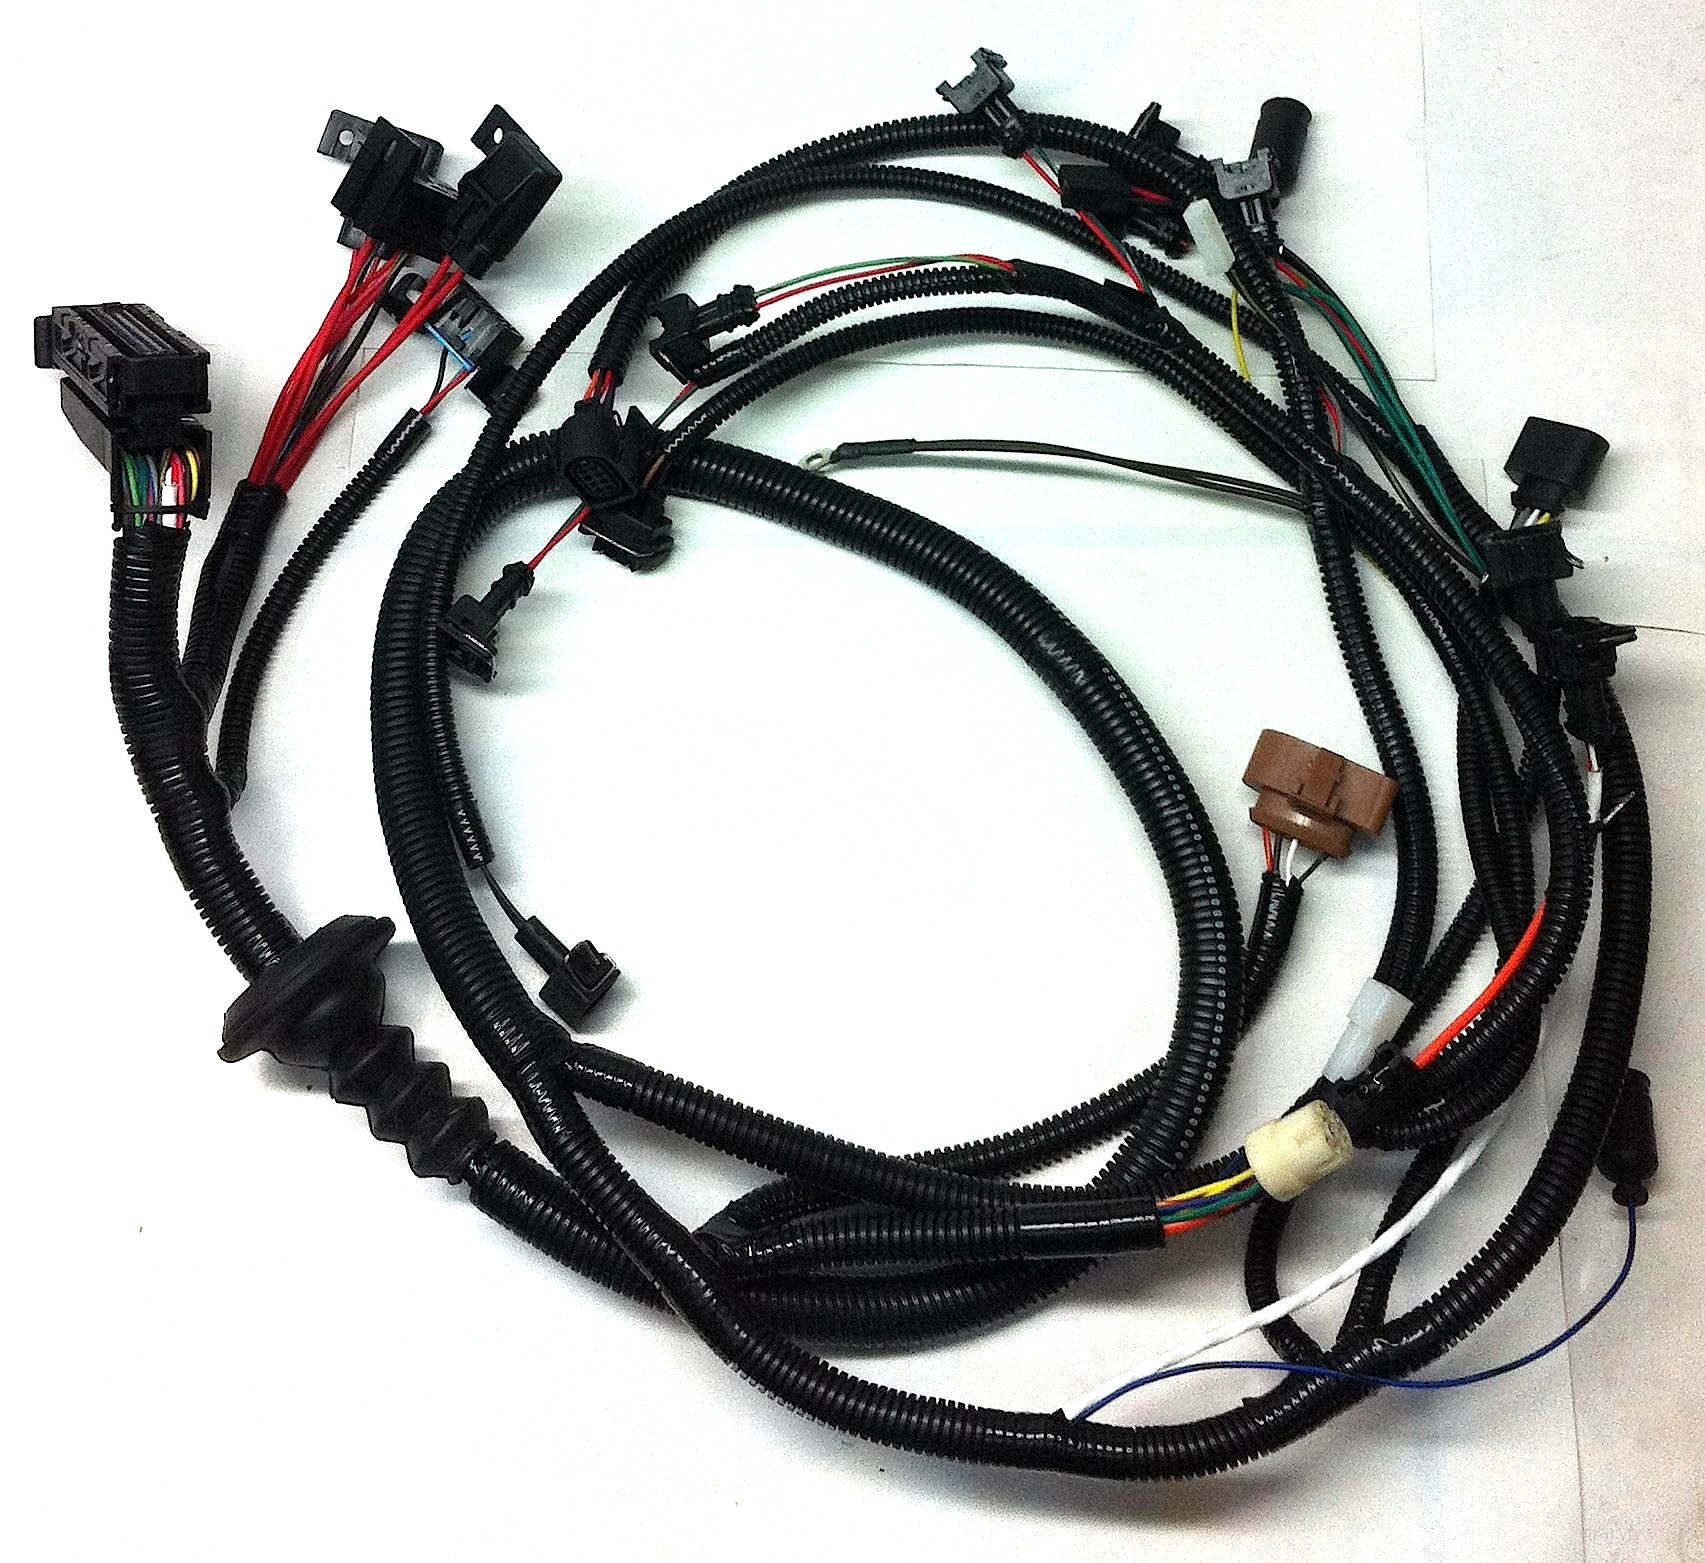 Wiring_Harness_2LR 2lr tiico conversion wiring harness foreign auto & supply, inc engine wiring harness at crackthecode.co